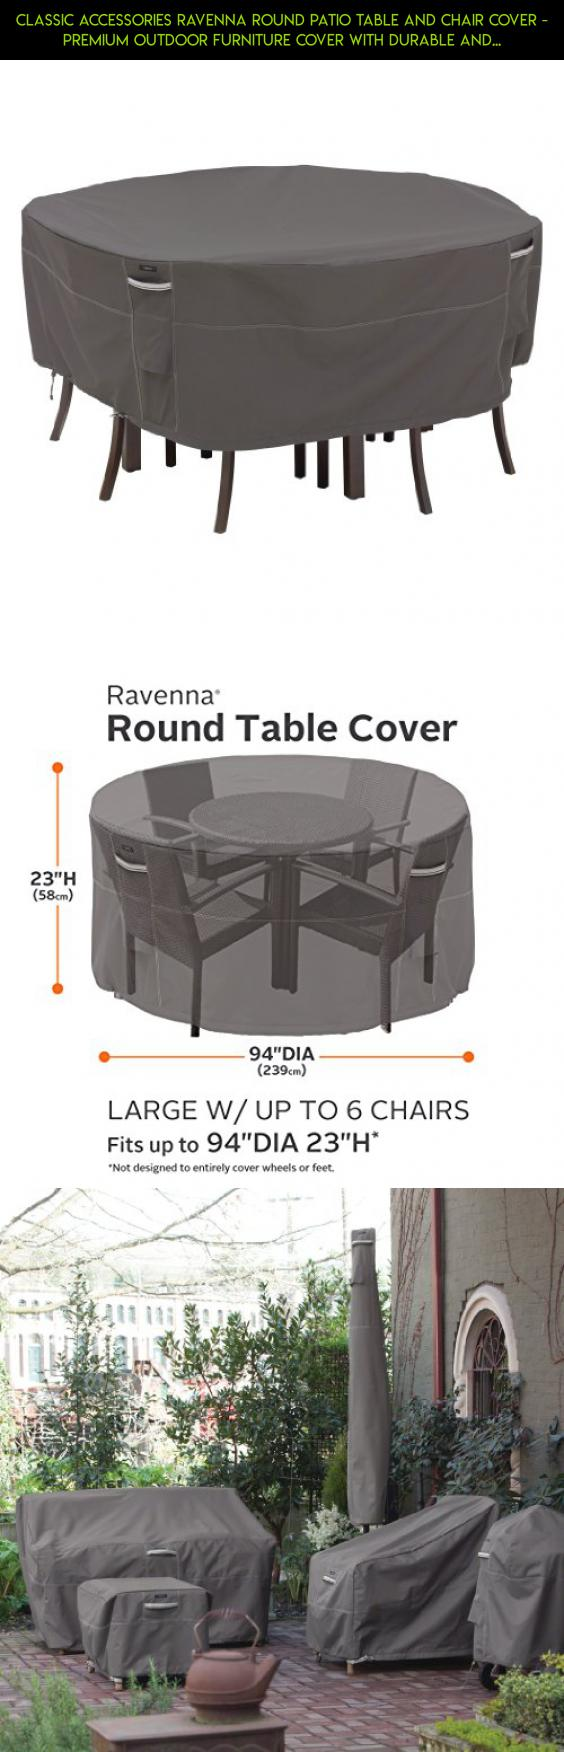 Classic Accessories Ravenna Round Patio Table And Chair Cover